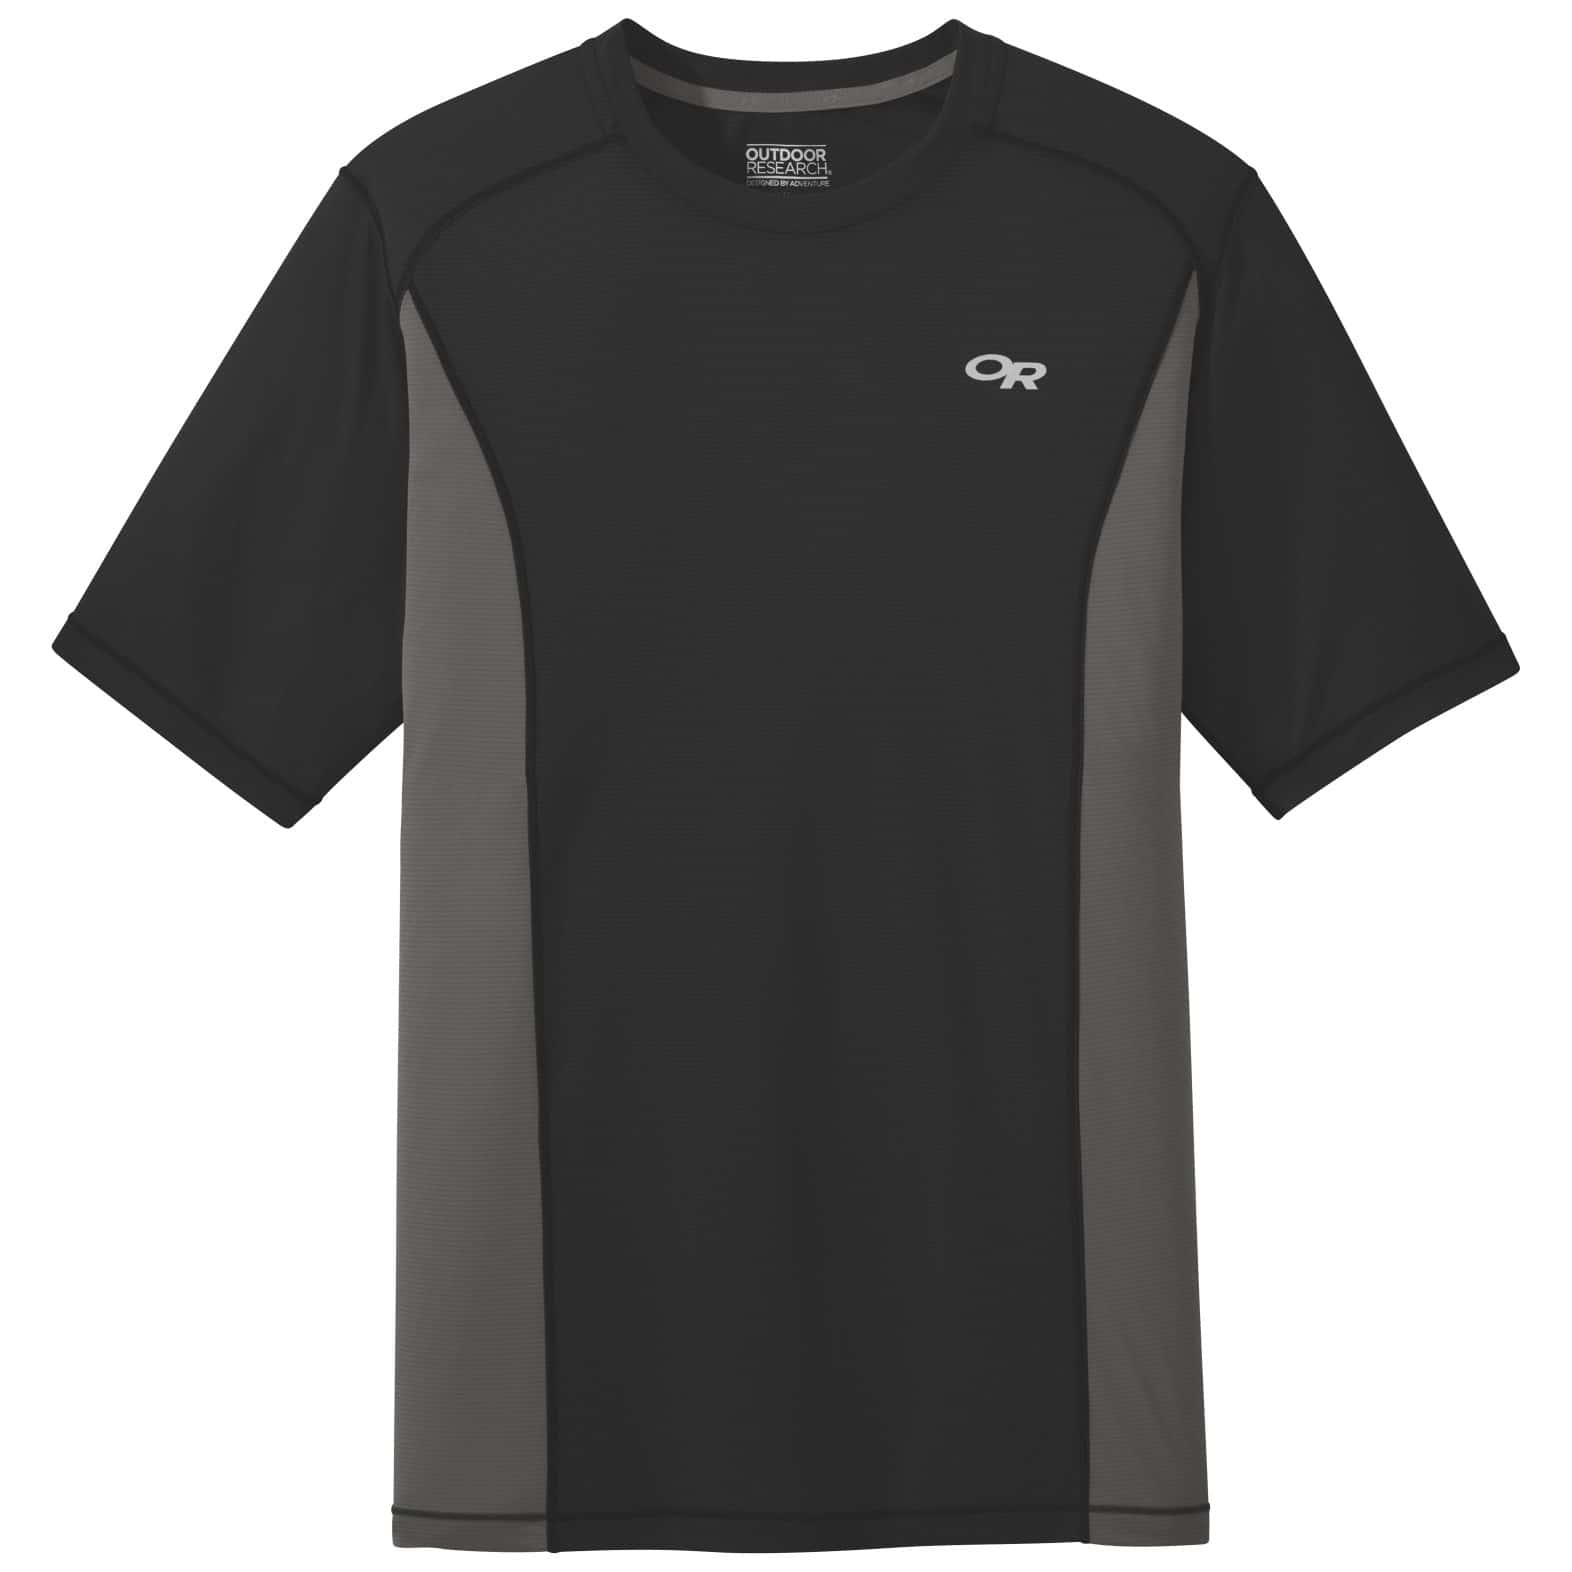 Outdoor Research-Echo Short-Sleeve Tee - Men's